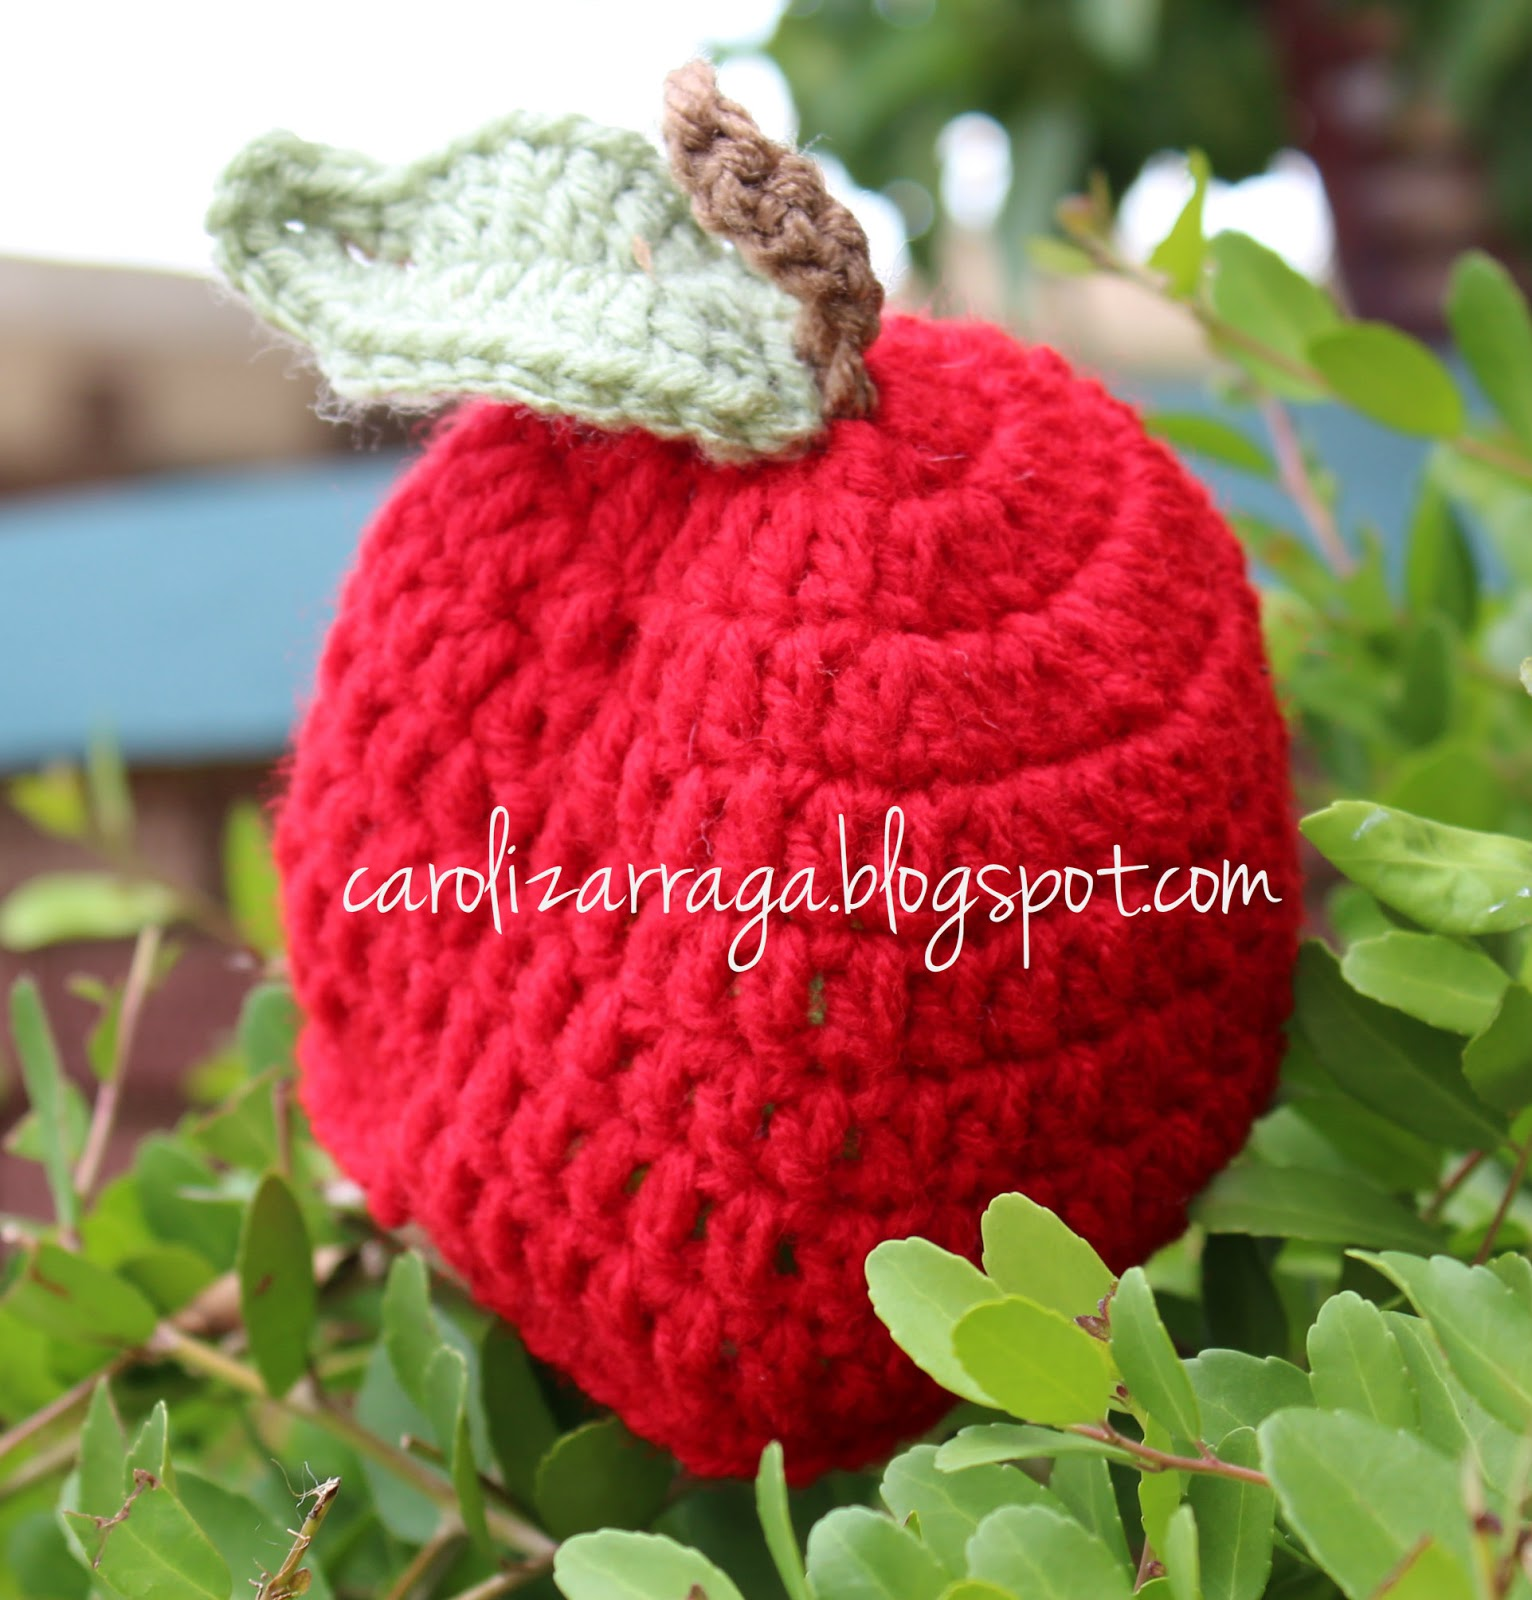 Patrones e ideas en Crochet..!!